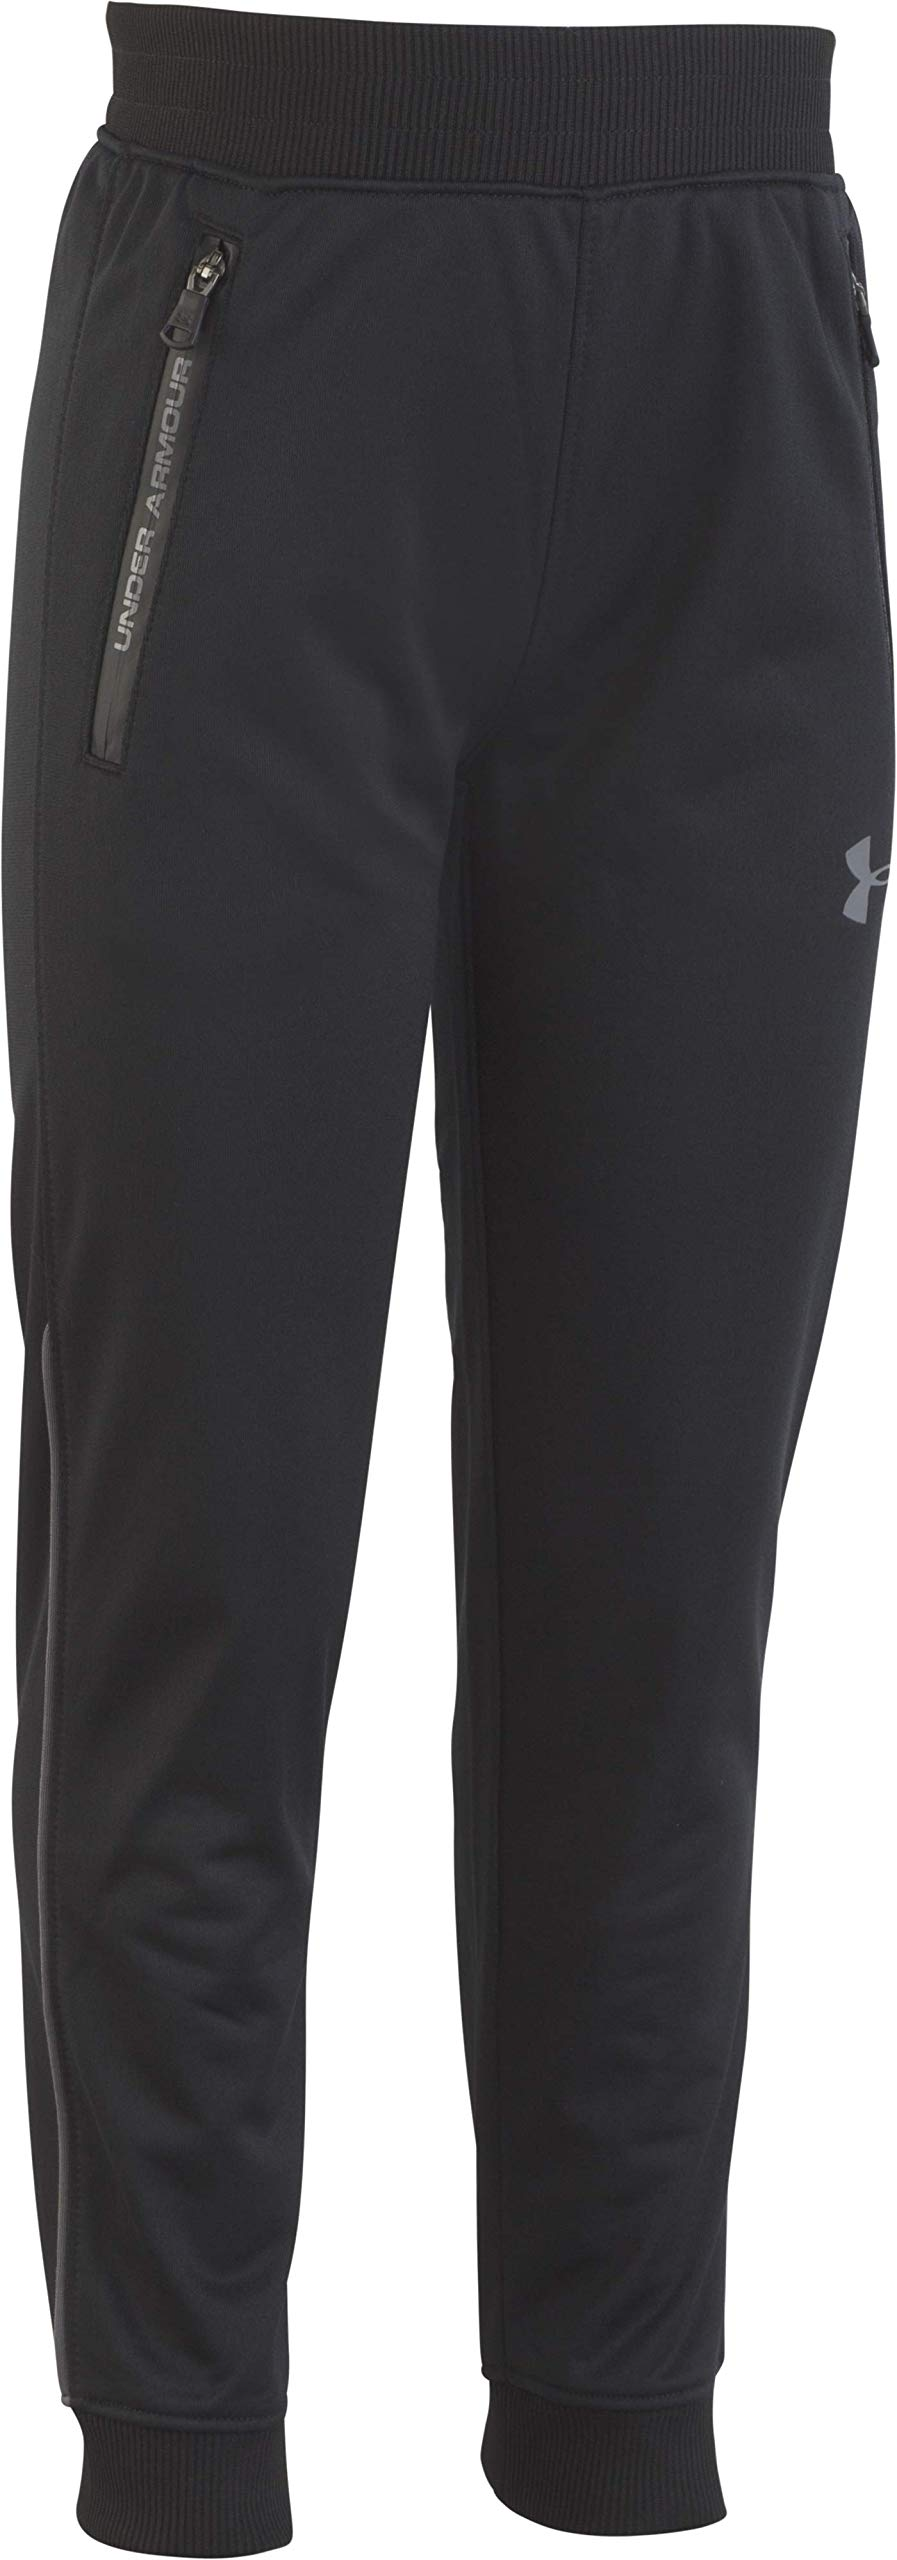 Under Armour Boys' Little Pennant Tapered Pant, Black, 7 by Under Armour